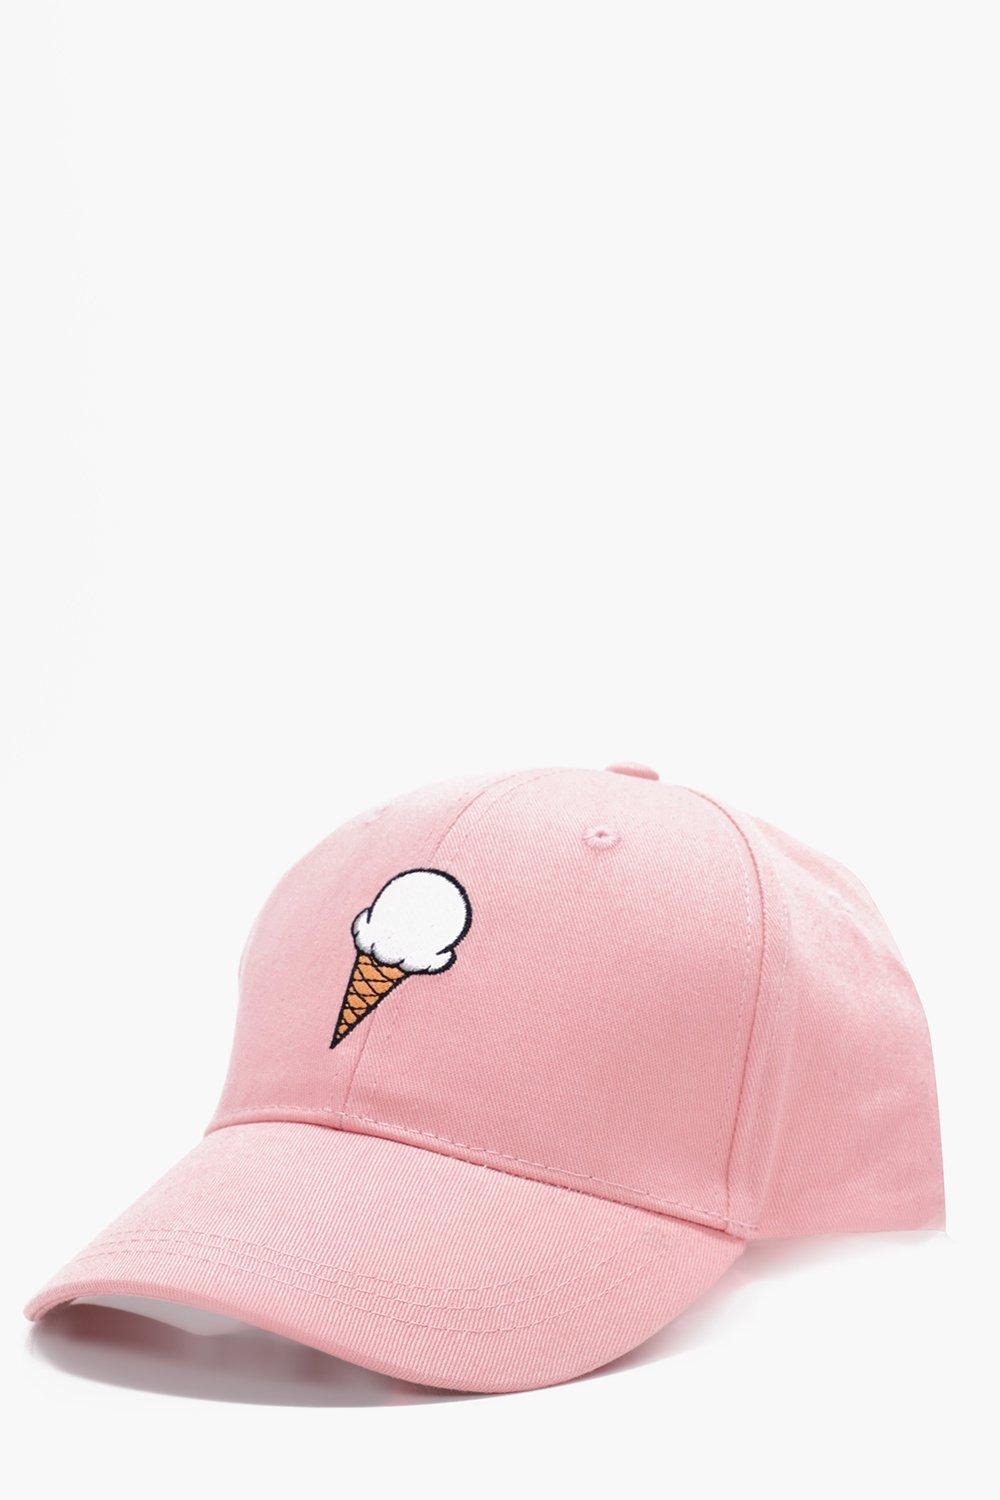 Cream Embroidered Snapback Cap - pink - Ice Cream